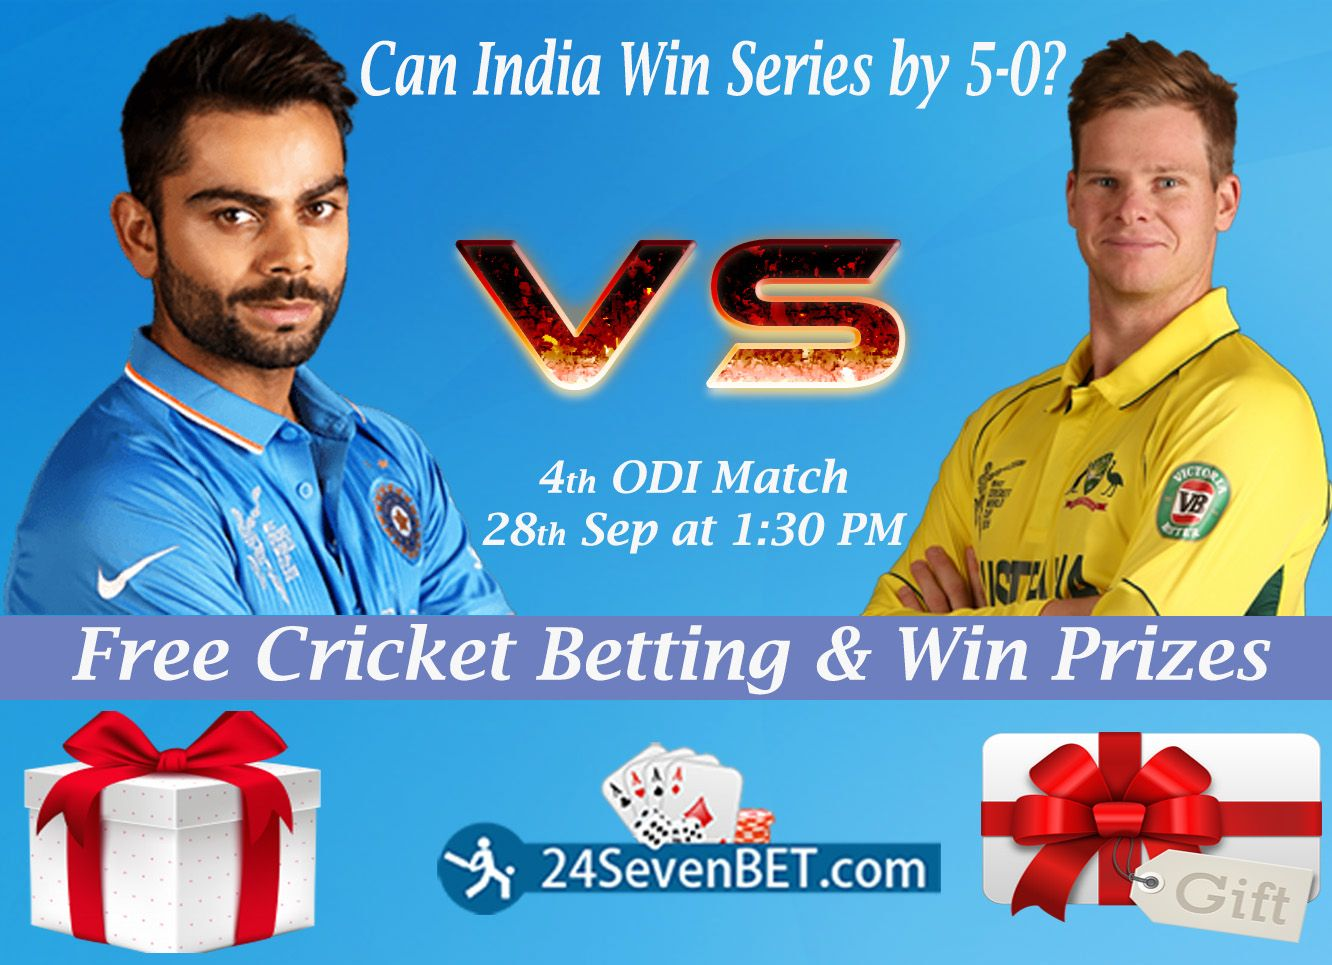 Can India Win 4th ODI Match and make a Clean Sweep by 50